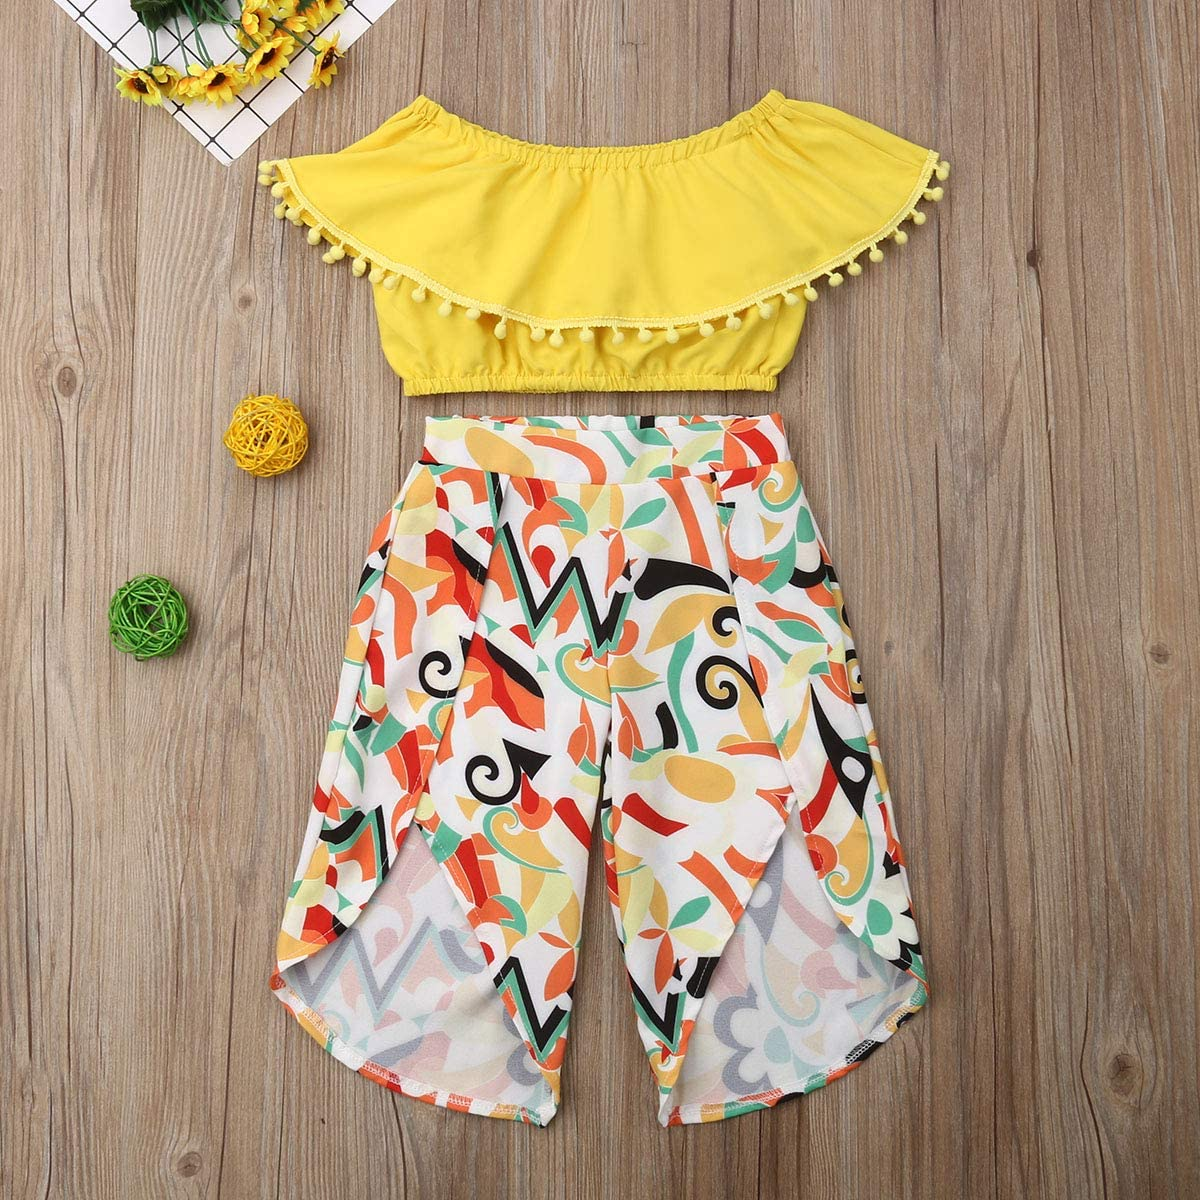 Toddler Kids Baby Girls Summer Outfit Set Ruffle Off Shoulder Crop Tops+Floral Wide-Leg Pants 2Pcs Clothes